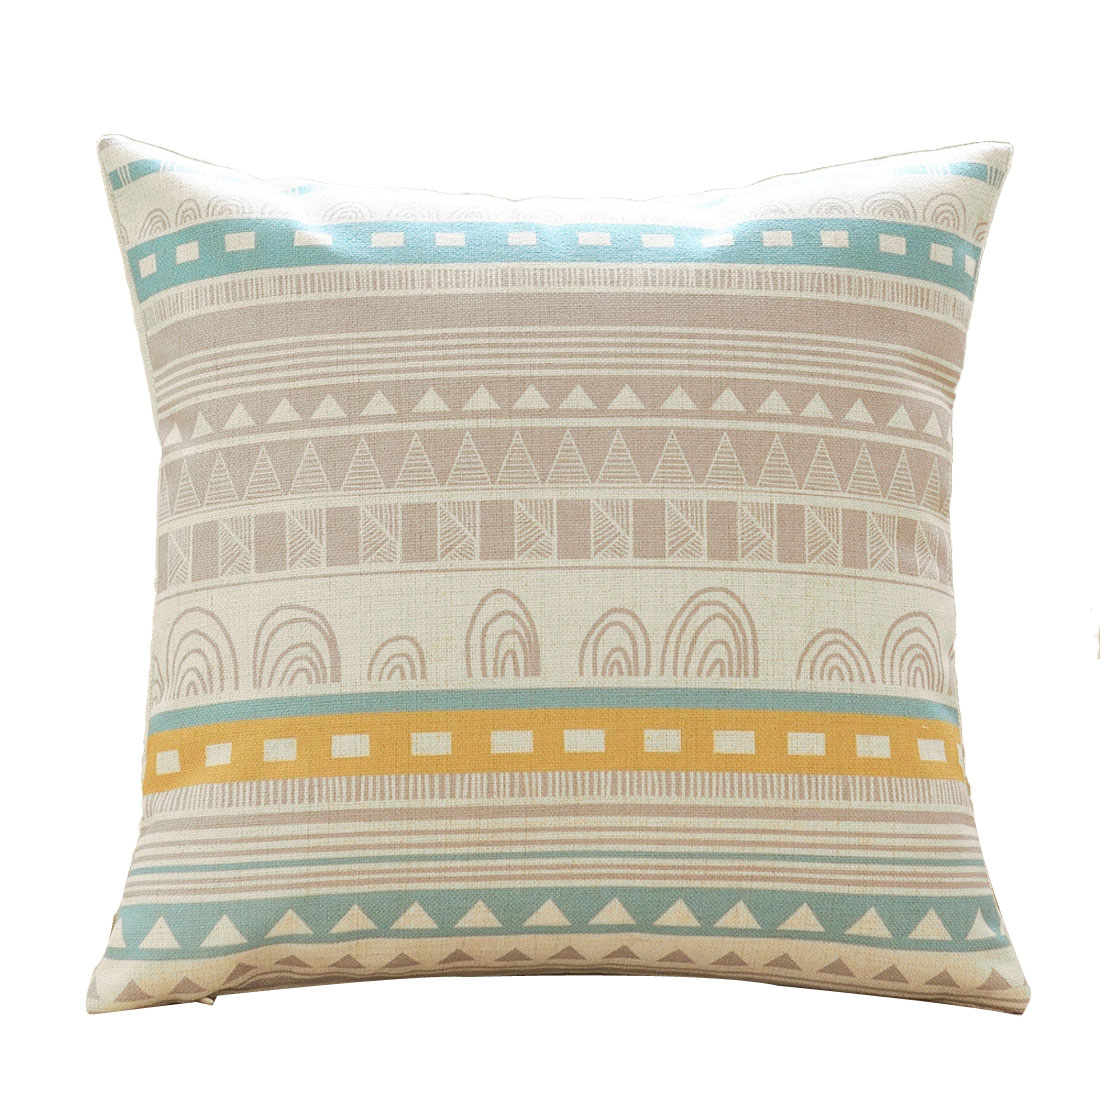 Sofa Cotton Linen Geometric Pattern Single Side Retro Style Cushion Pillow Cover